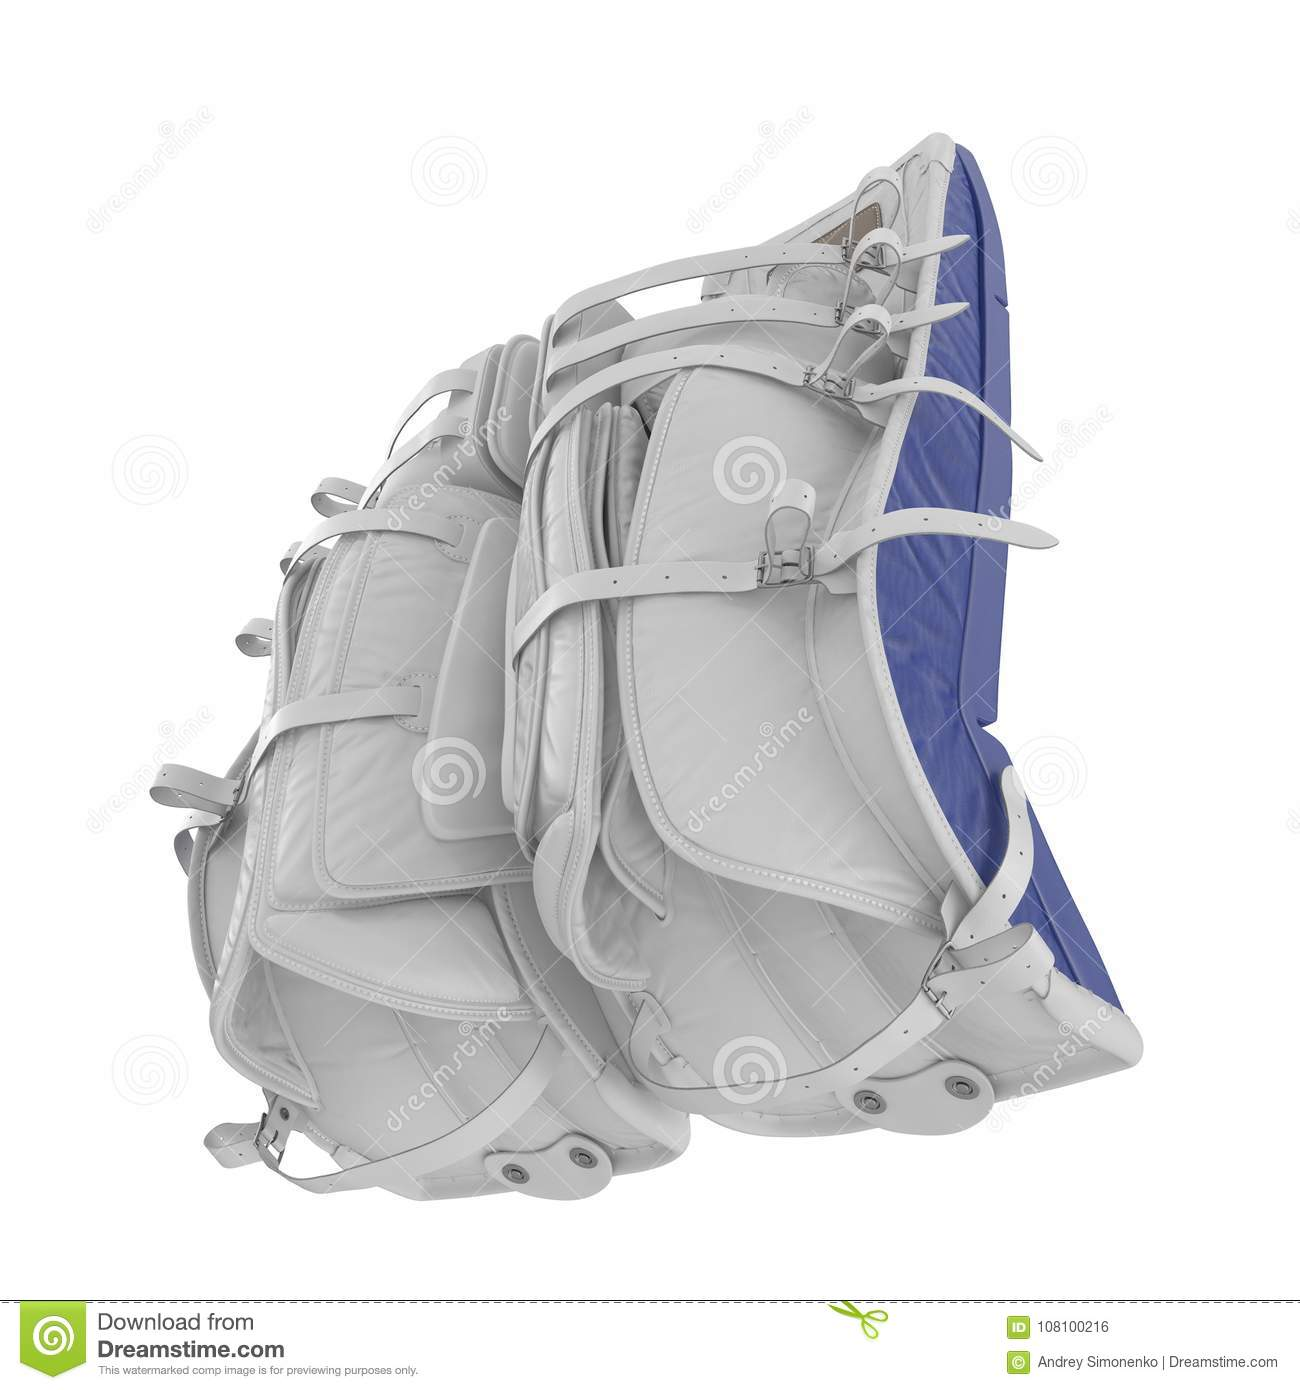 Hockey Goalie Leg Pads On White  3D Illustration Stock Illustration